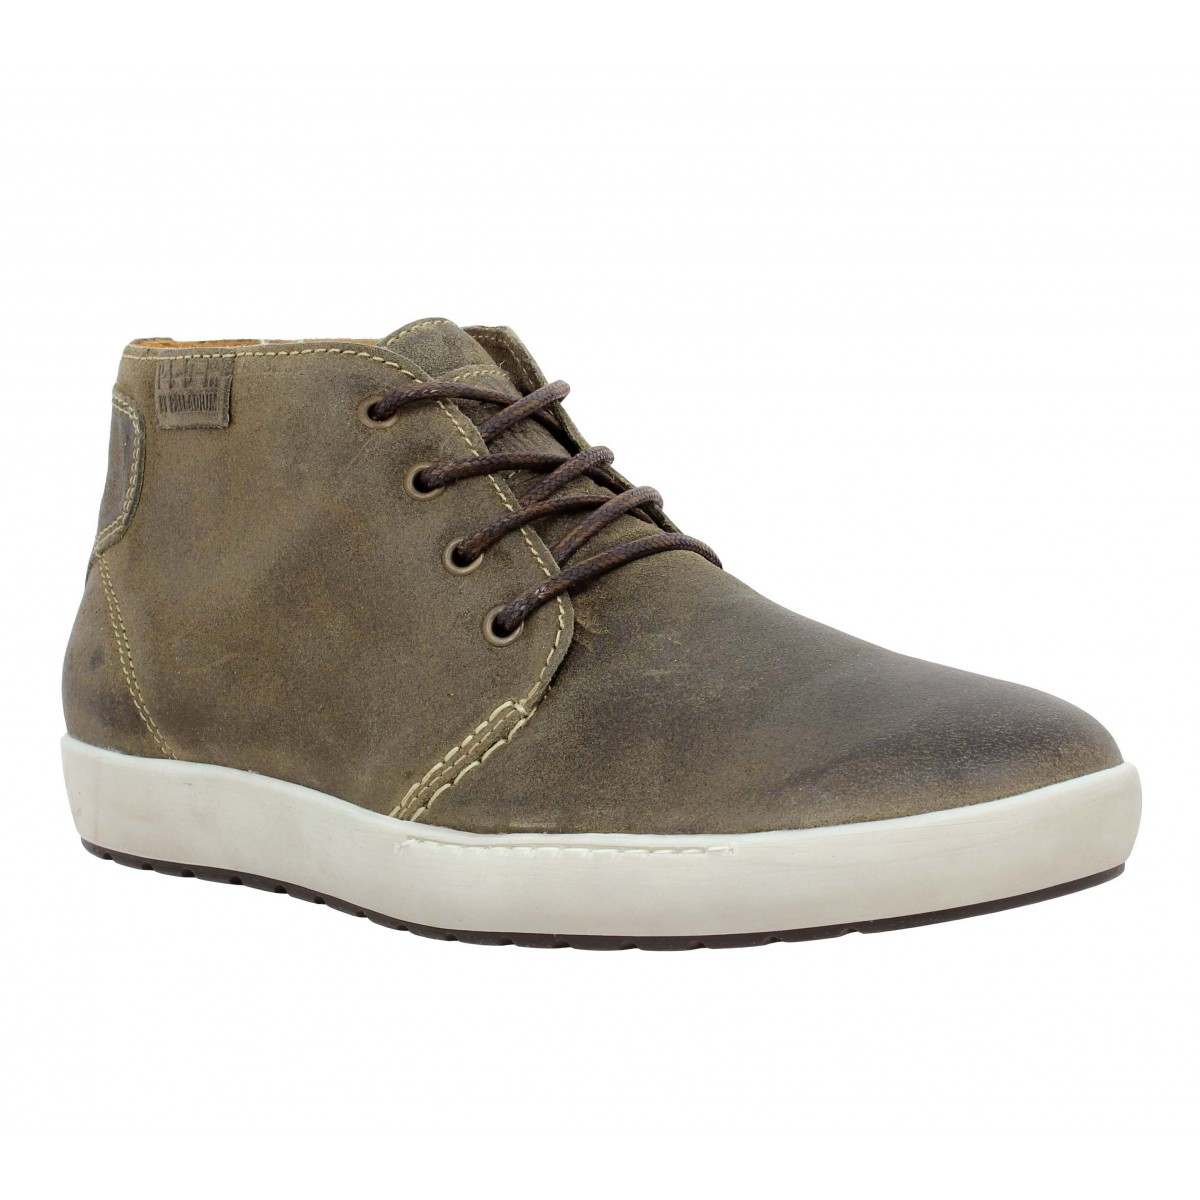 Baskets PALLADIUM Mumbai Rust velours gras Homme Antilope